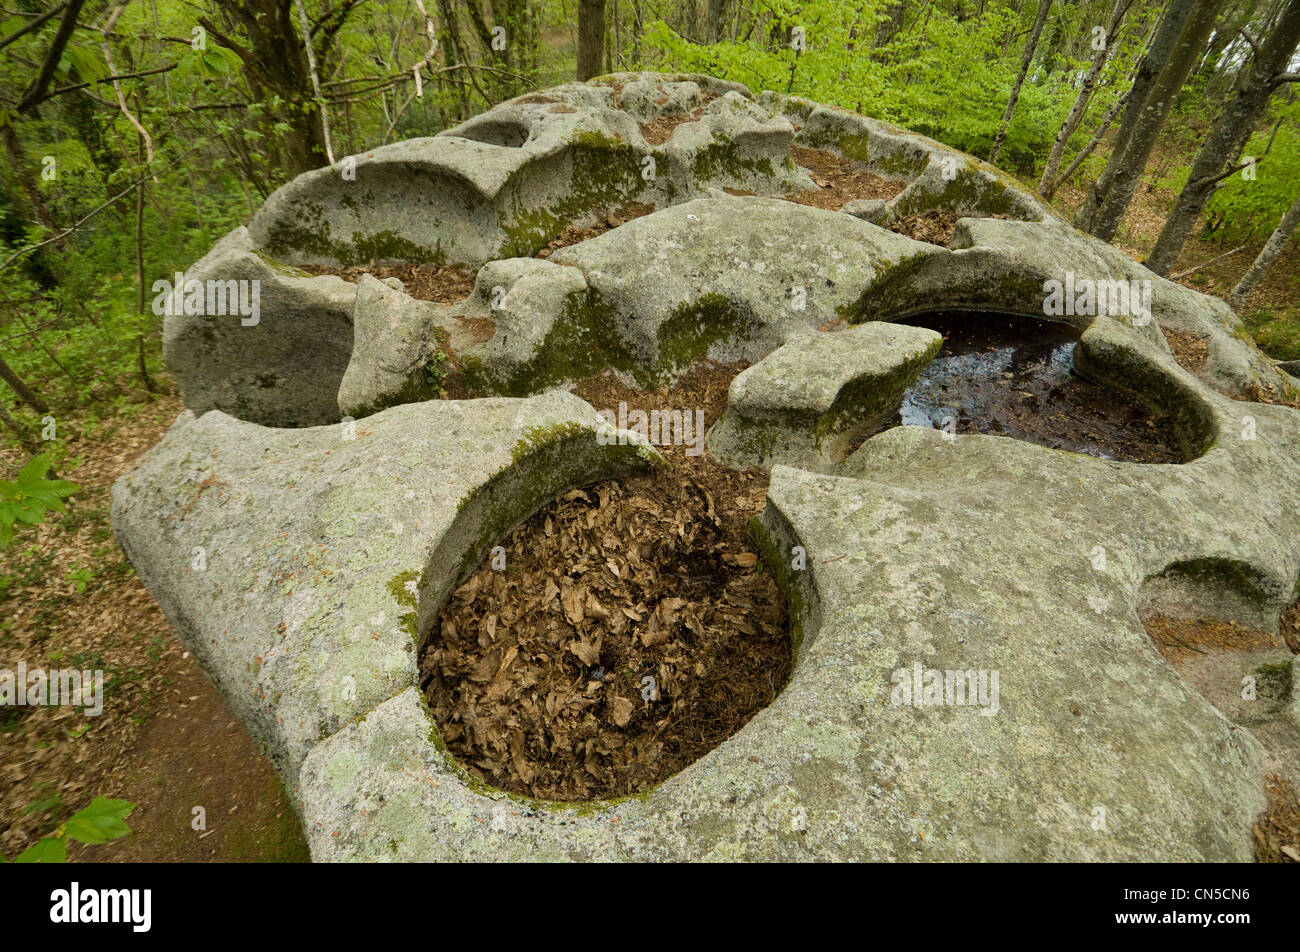 France, Finistere, Nevez, huge dolmen hidden in the heart of the forest - Stock Image